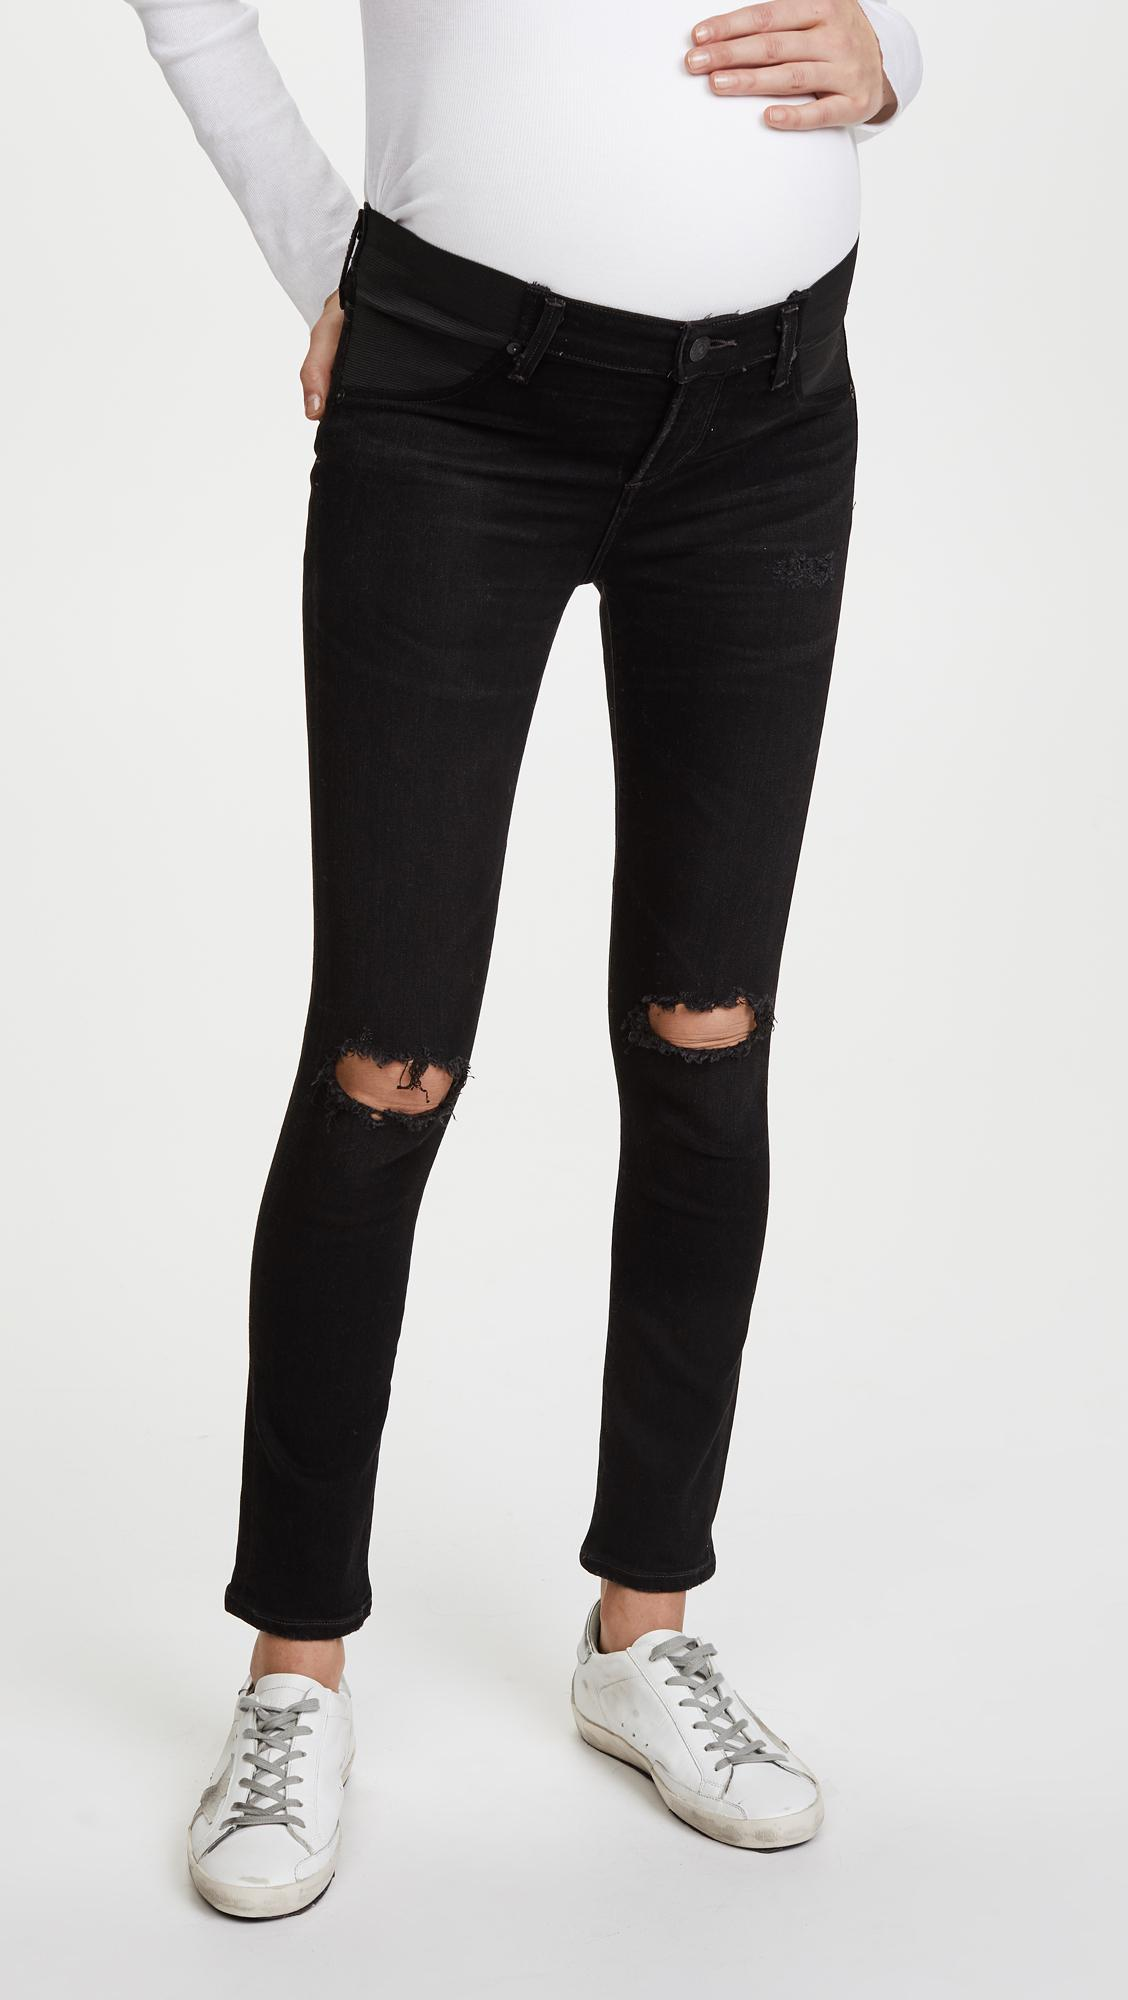 4f380baa89332 Lyst - Citizens of Humanity Maternity Avedon Ankle Jeans in Black